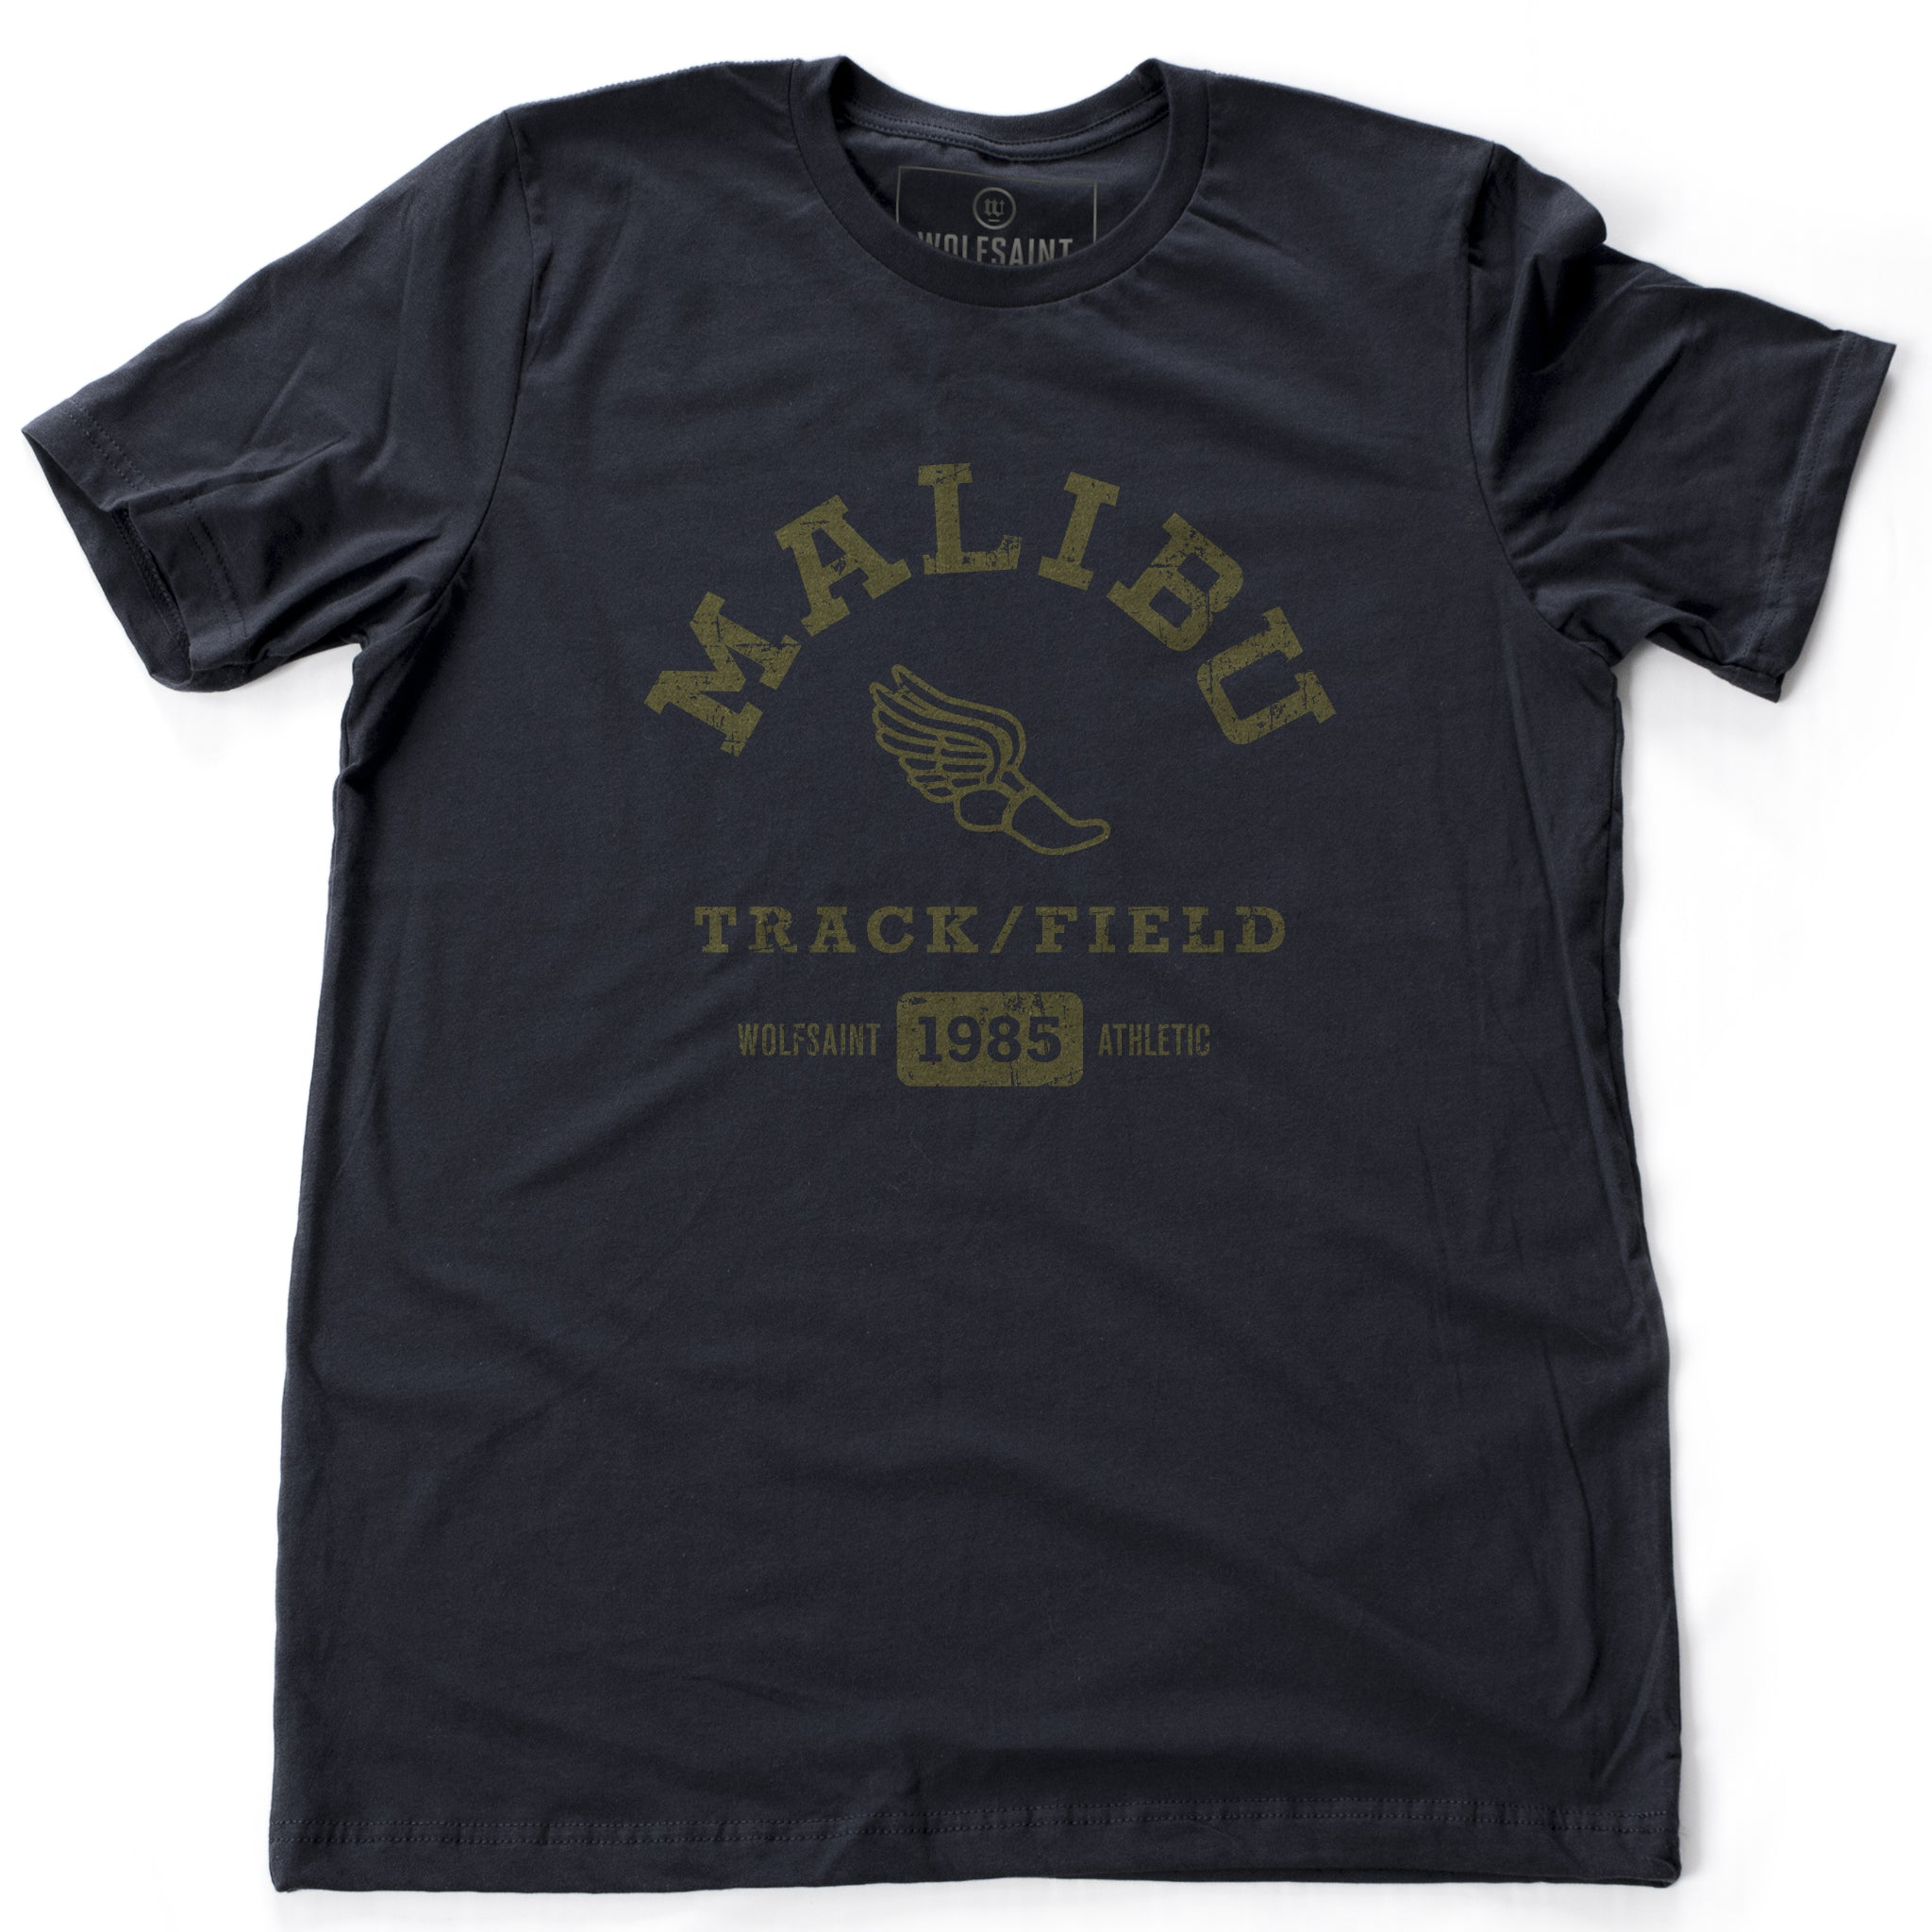 A fashionable, vintage-inspired retro t-shirt in Classic Navy Blue, featuring a graphic representing a sarcastic and fictitious Malibu (California) Track and Field team. From wolfsaint.net